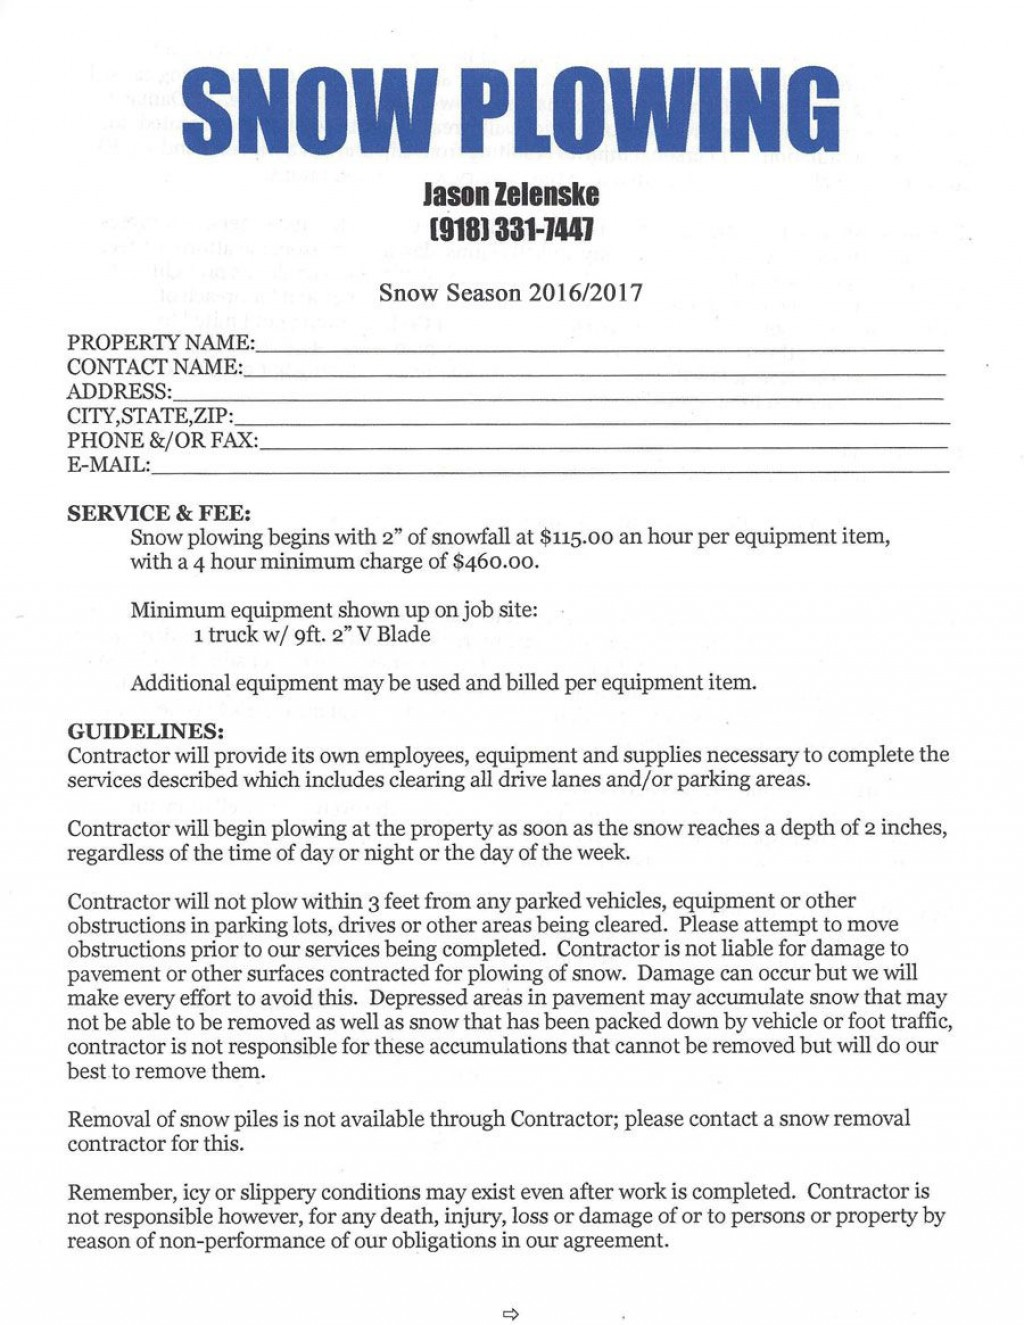 009 Best Snow Removal Contract Template Concept  Templates Free Printable Simple Seasonal Plow AgreementLarge